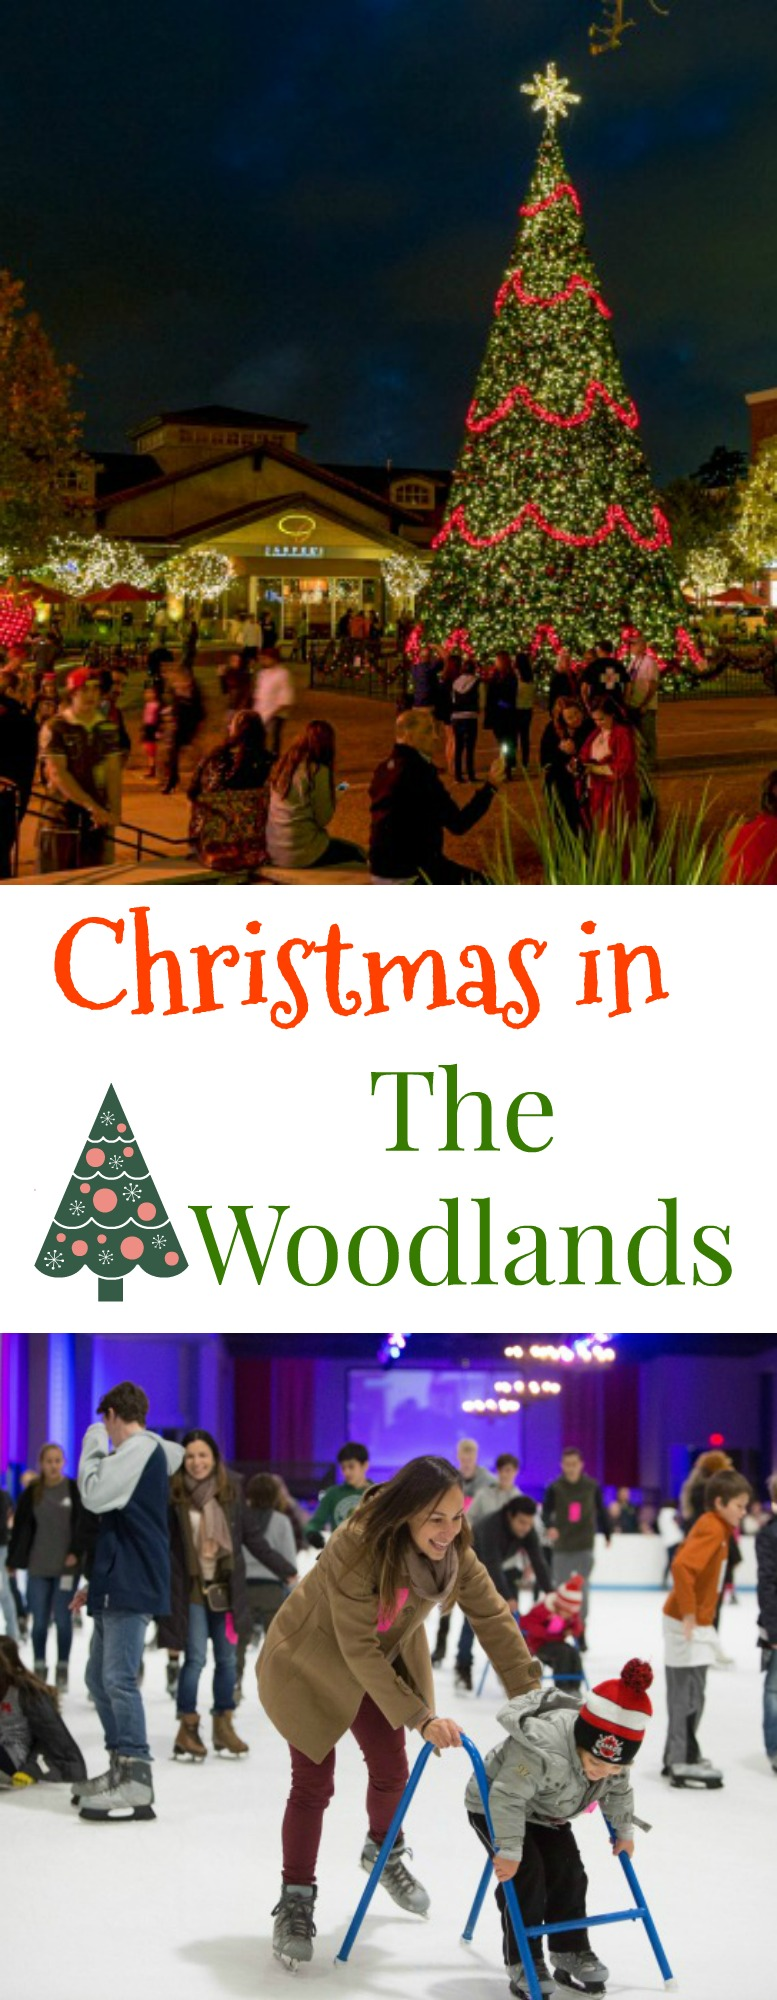 Christmas in The Woodlands pin